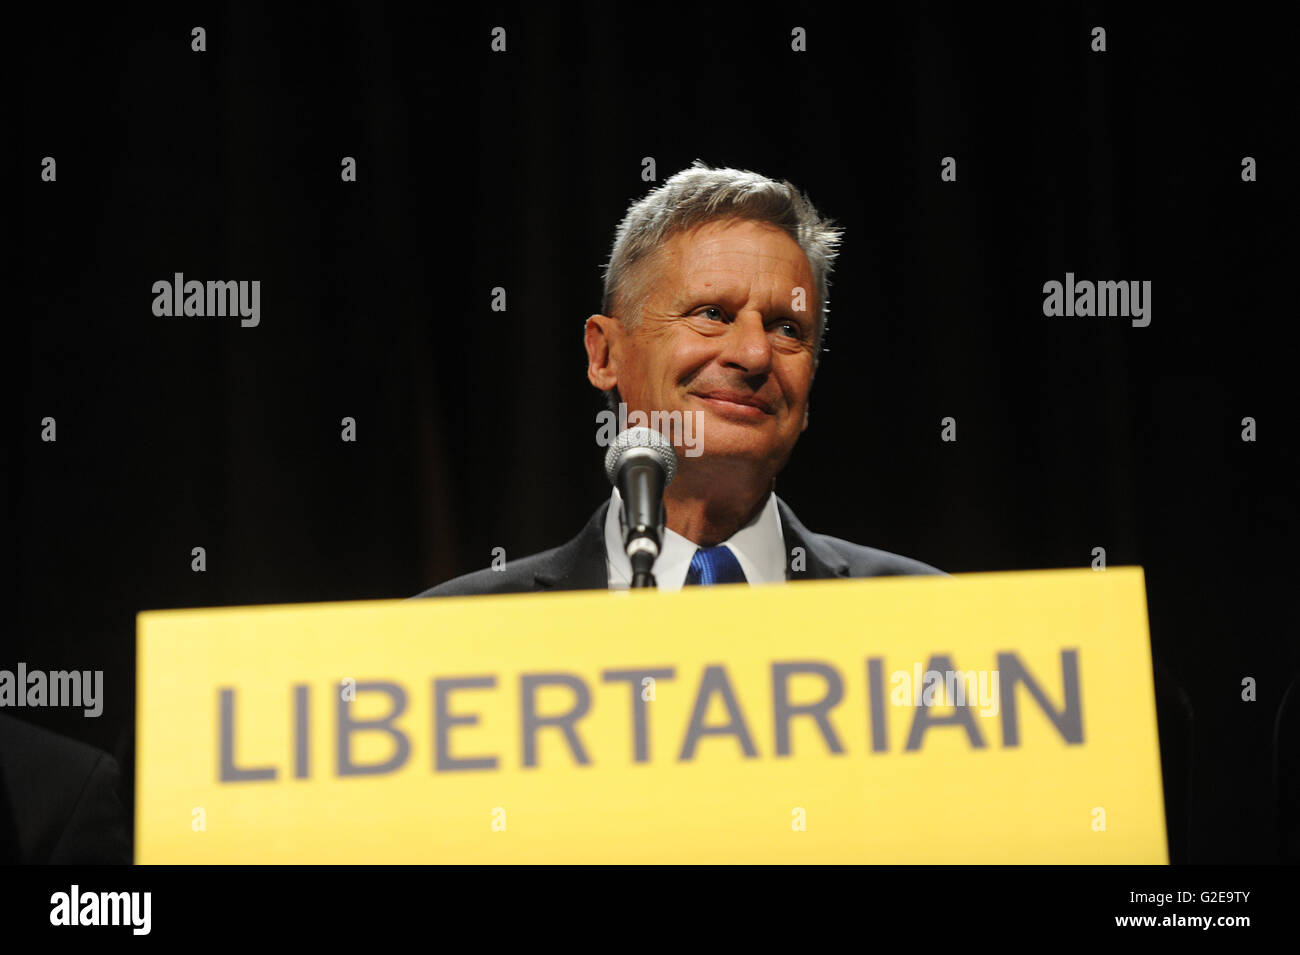 Orlando, Florida, USA. 28th May, 2016. Libertarian party presidential candidate, former New Mexico Governor Gary - Stock Image